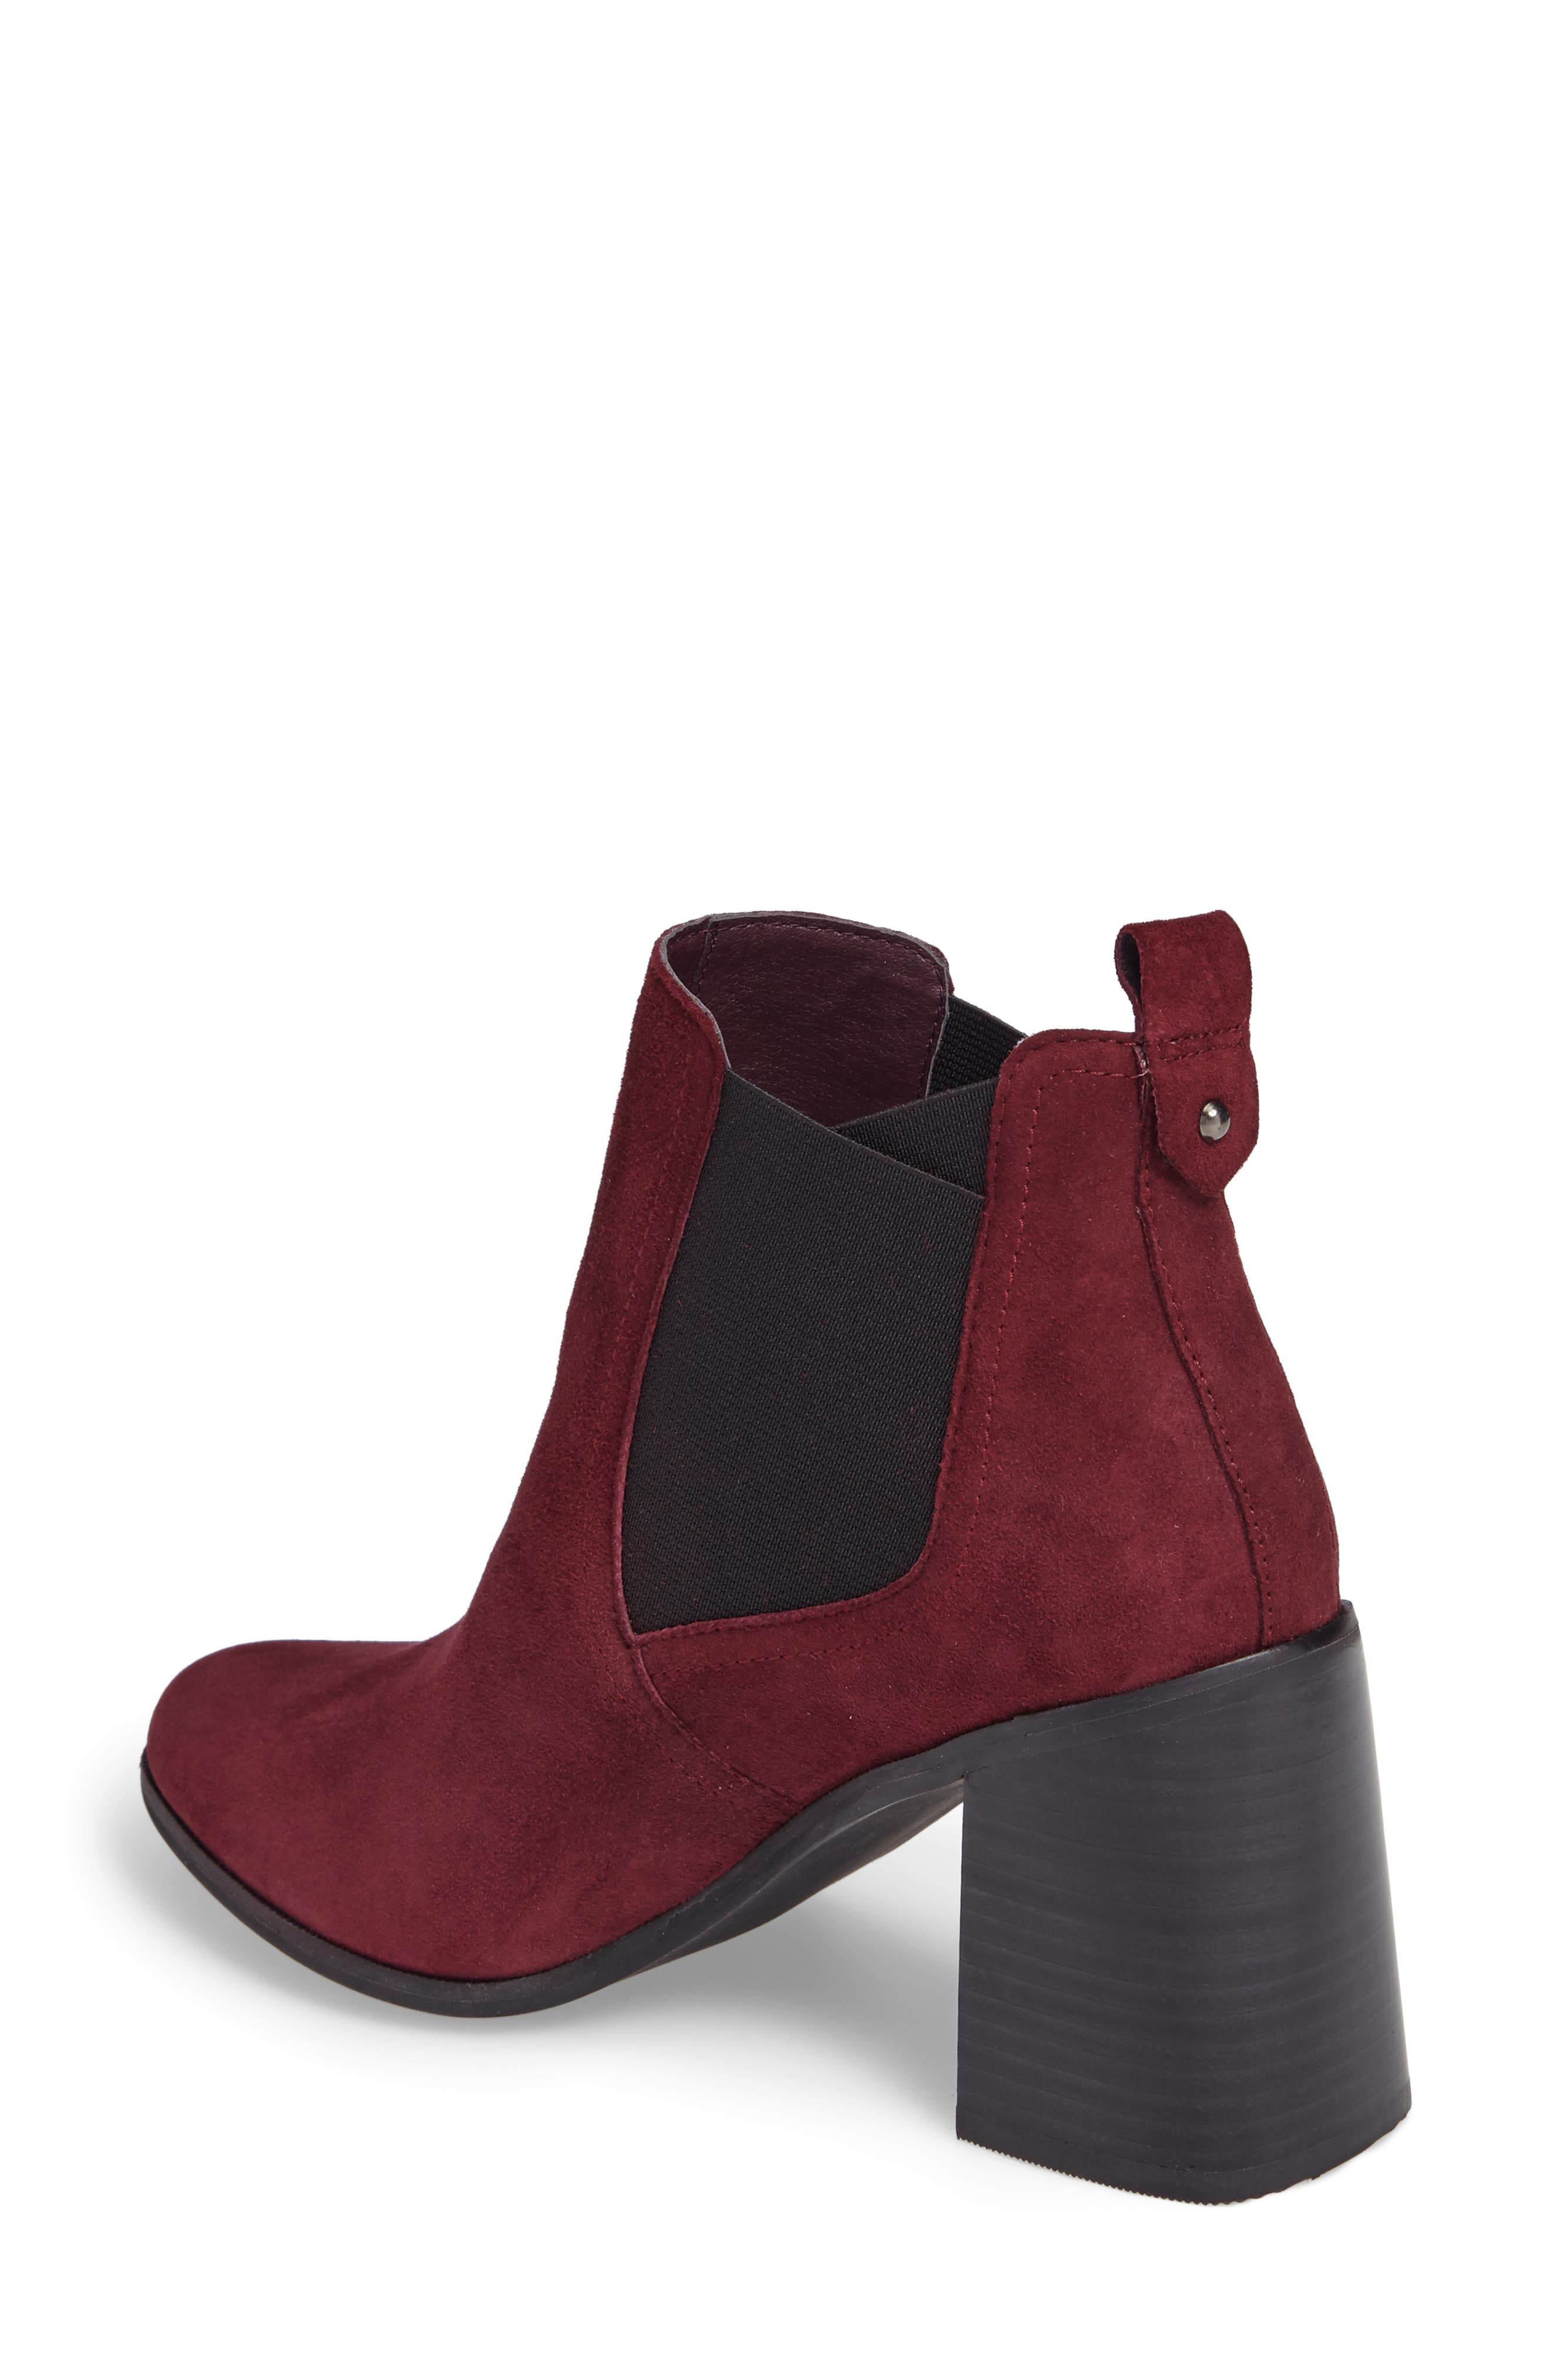 Quinn Flared Heel Chelsea Bootie,                             Alternate thumbnail 10, color,